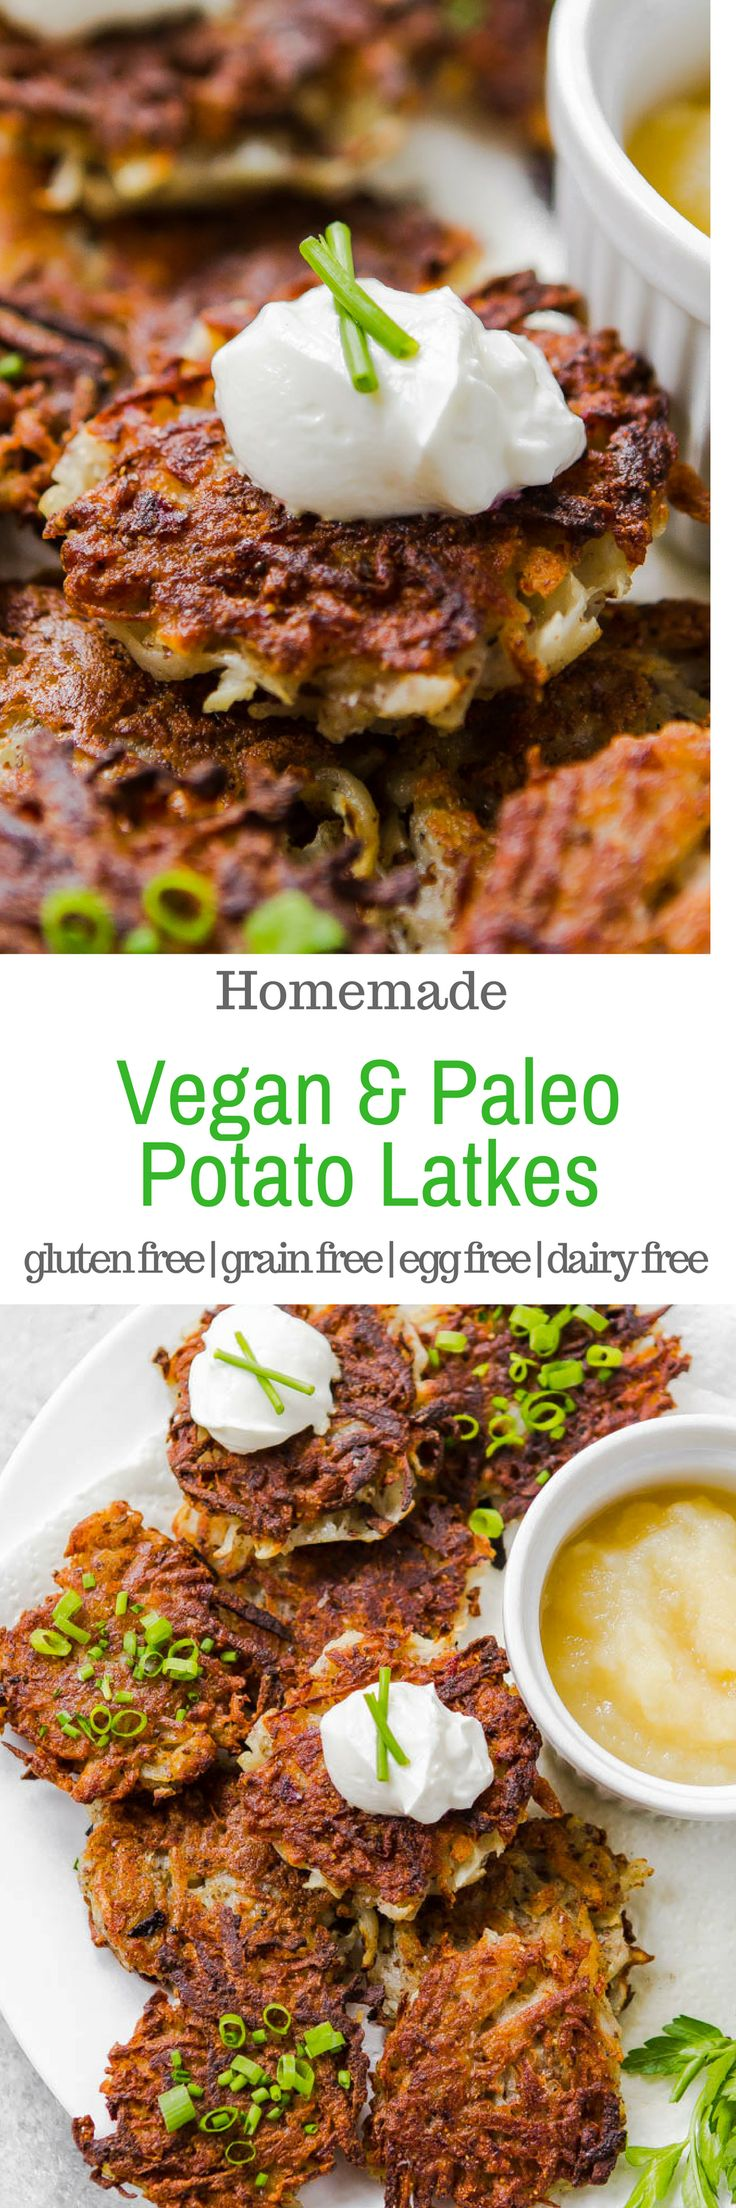 There are plenty of potato latke recipes out there for Hanukkah, but these are special because they contain NO gluten, grains, eggs, or dairy! #EggFree, #Glutenfree #grainfree #vegan #paleo #recipe #Hanukkah #Chanukah #recipe via @acleanbake